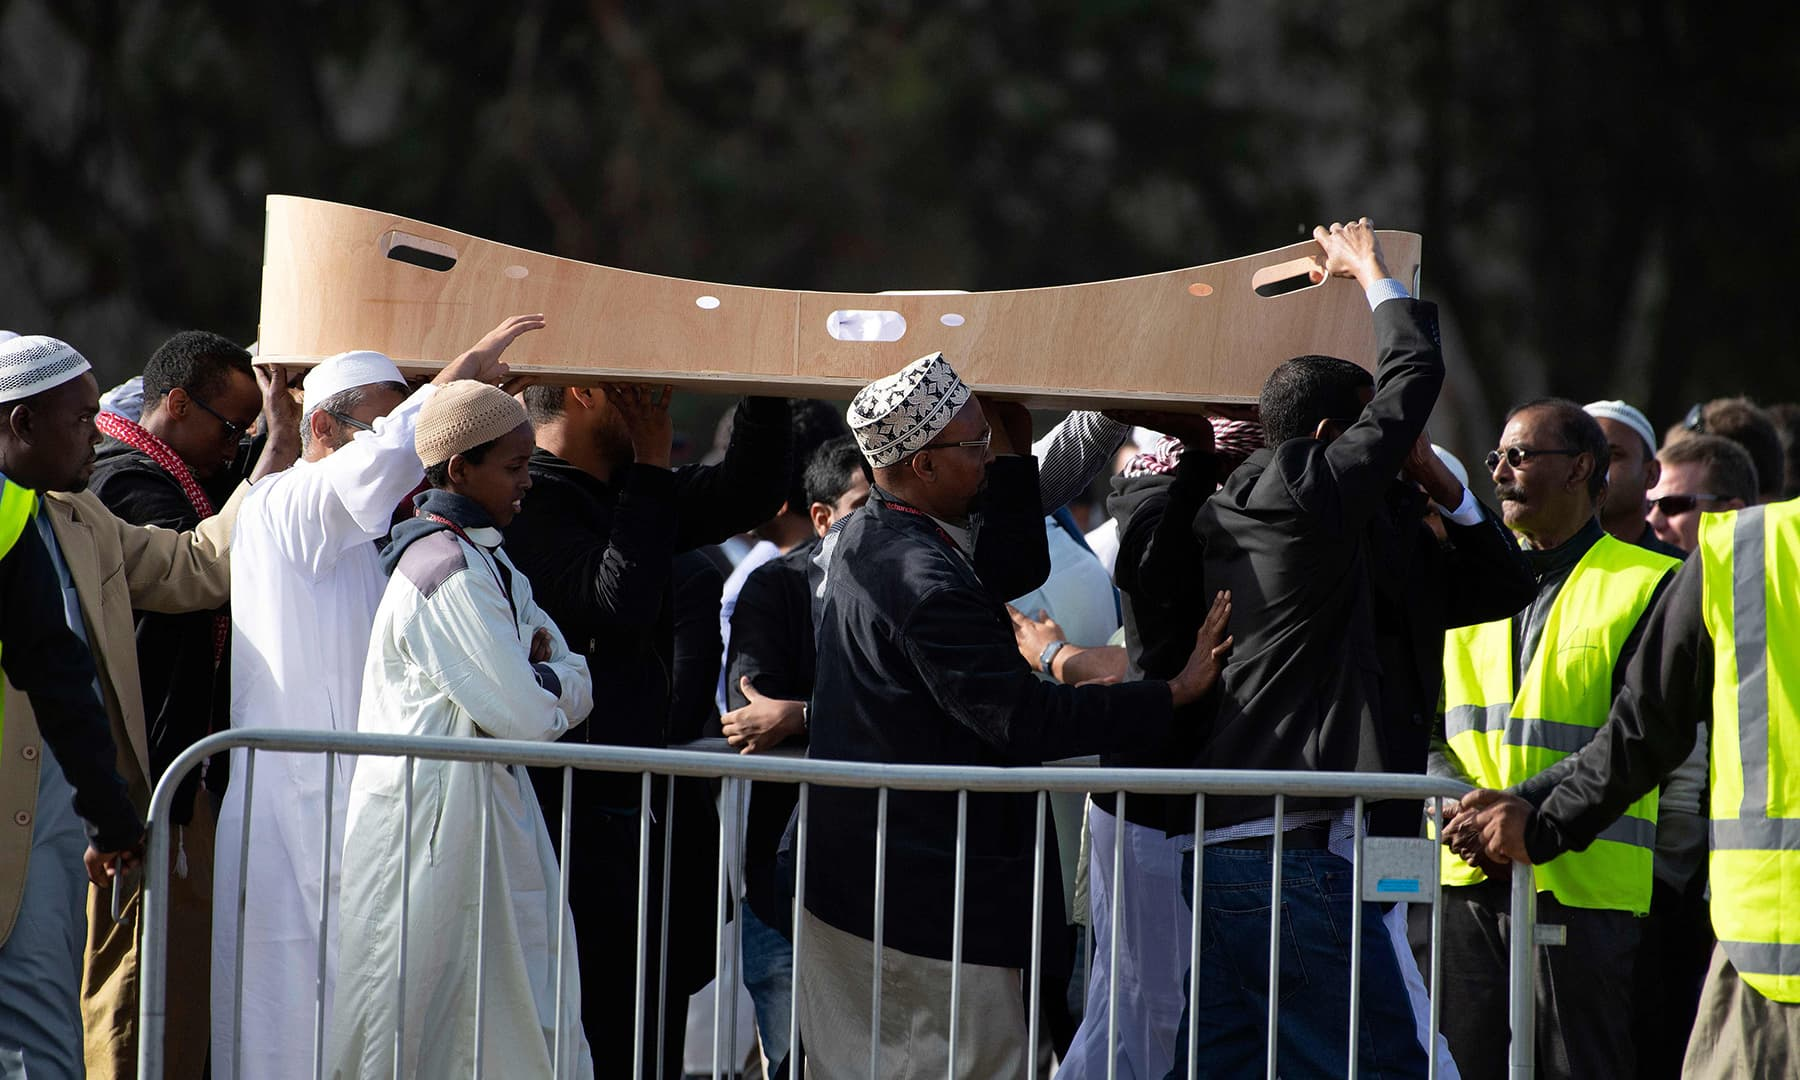 Mourners carry the casket of a victim who was killed in the New Zealand twin mosque massacre at Memorial Park Cemetery during a burial in Christchurch. — AFP